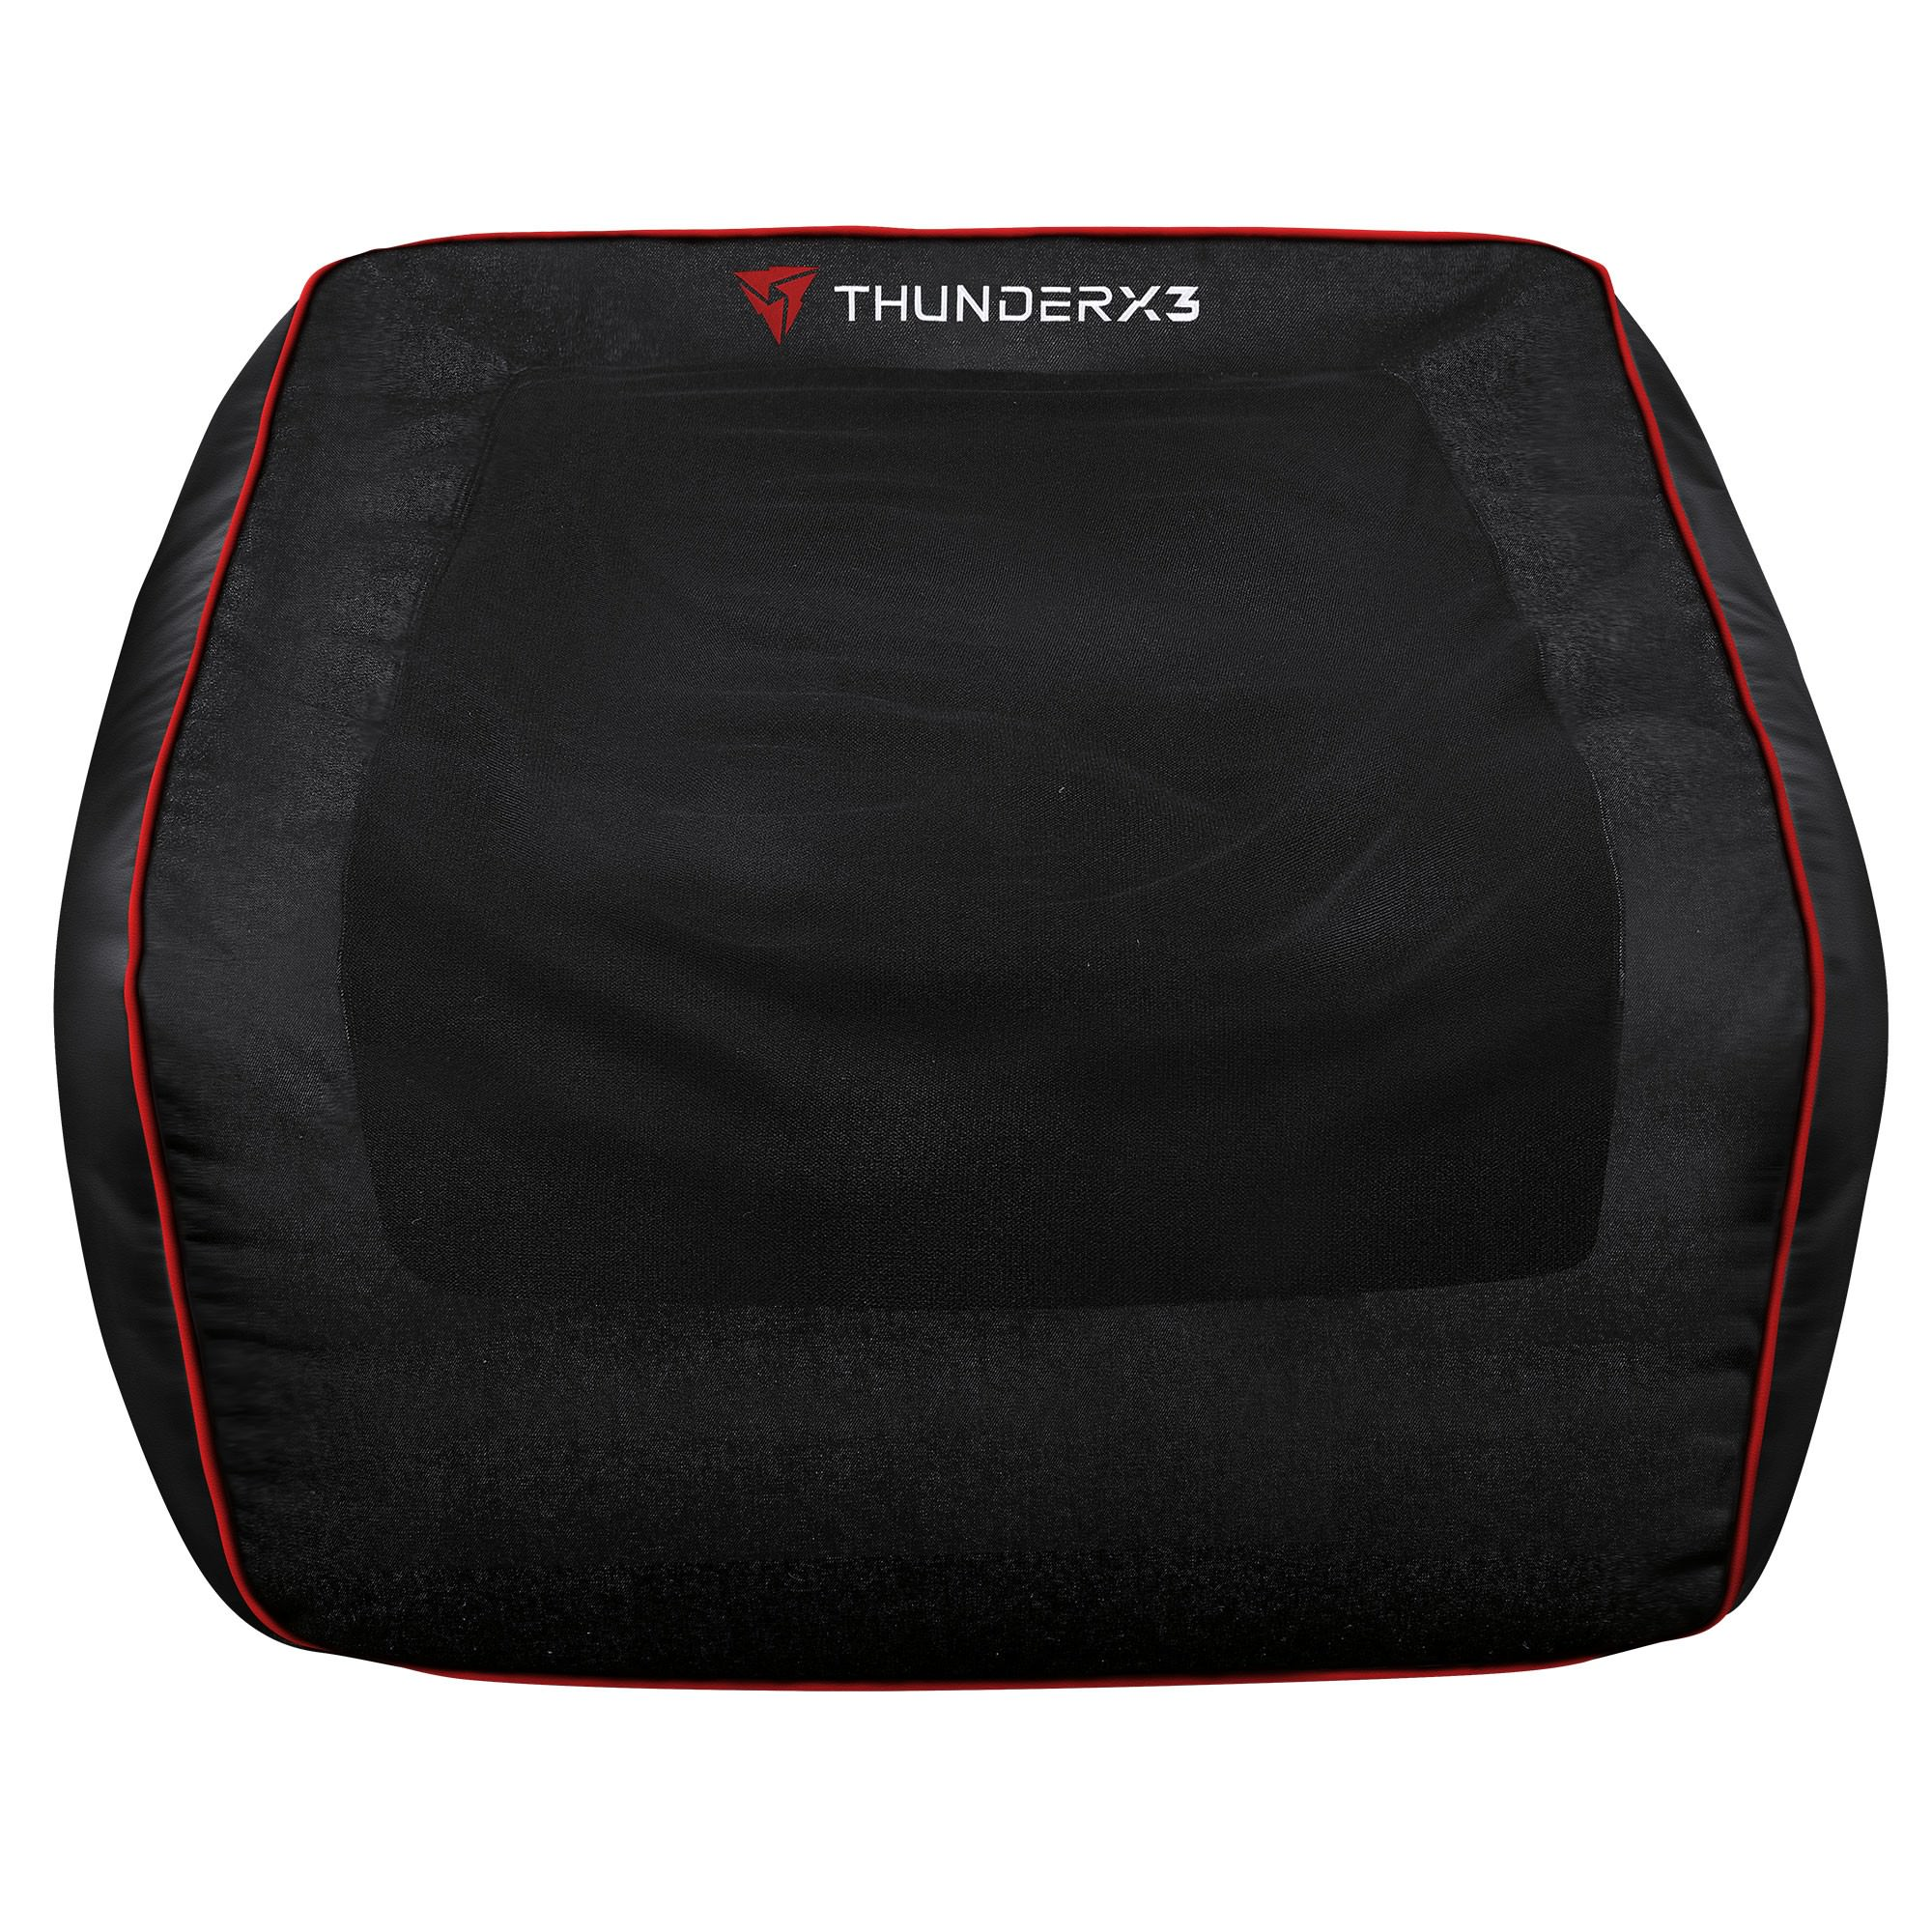 ThunderX3 DB5 Console Gaming Bean Bag Cover, Black / Red